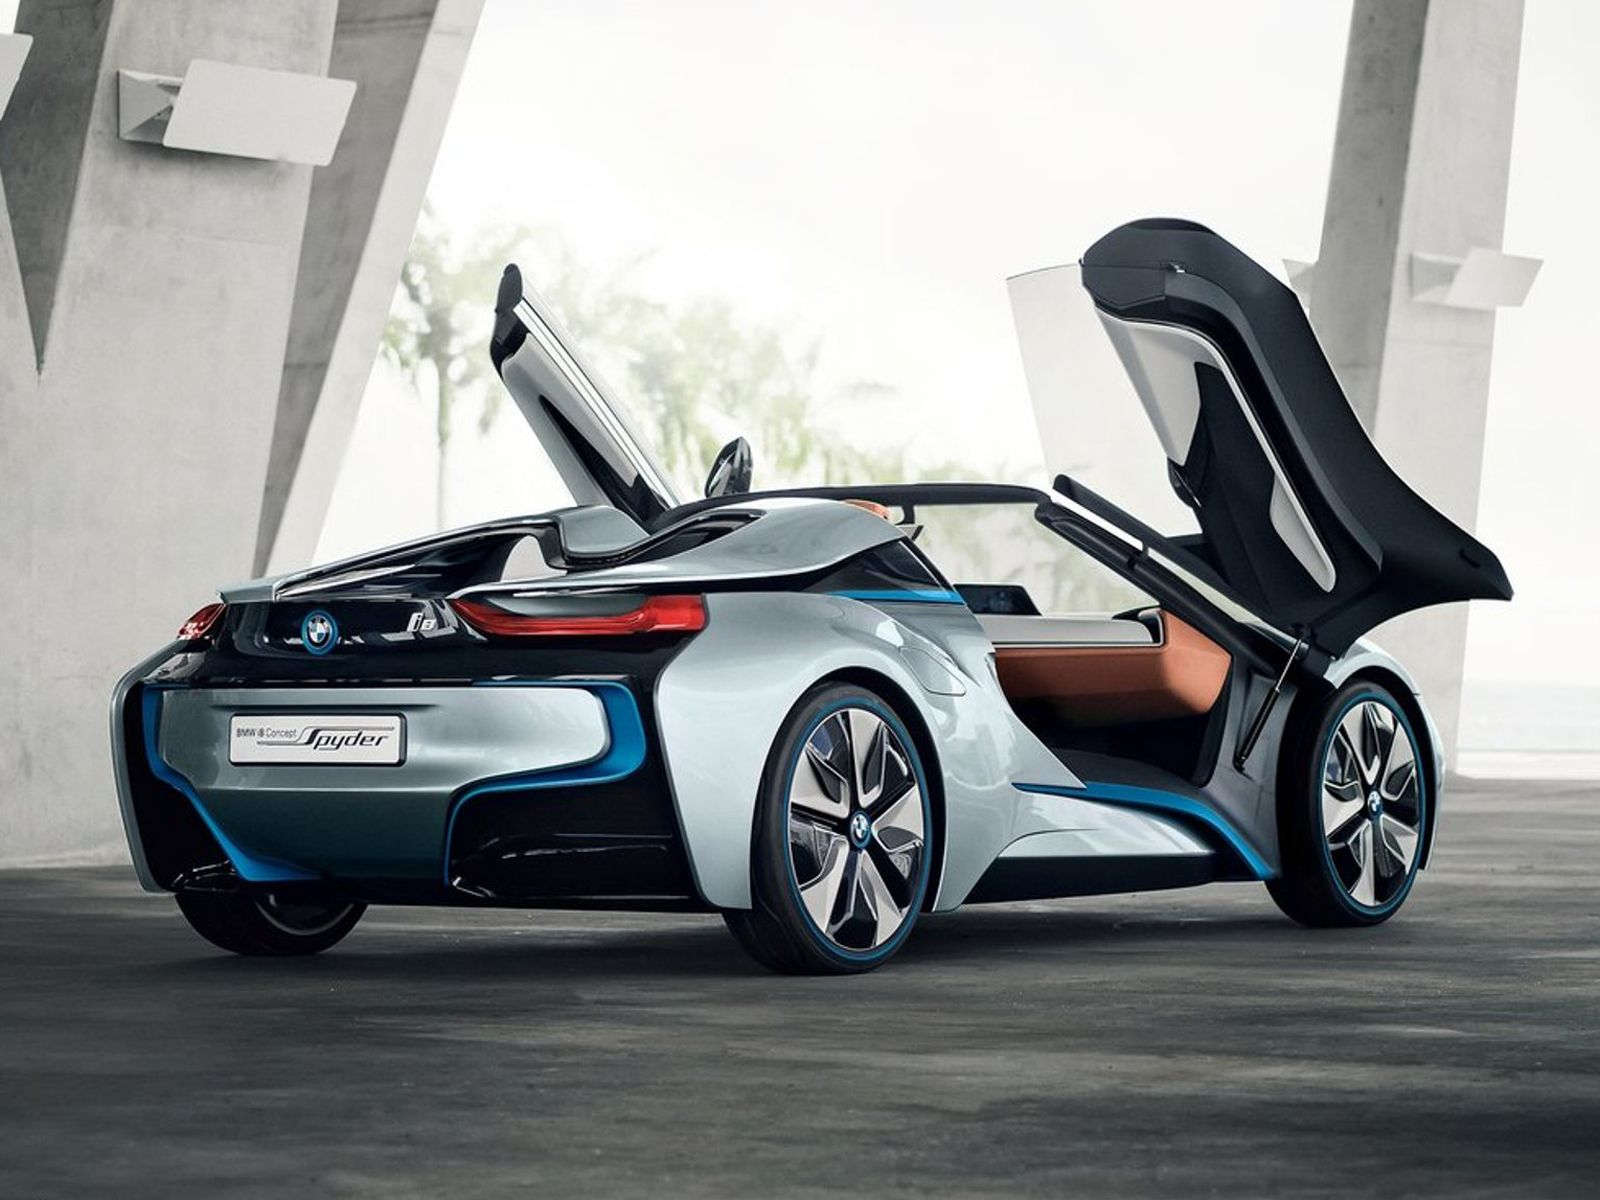 This car is really amazing and new bmw electric car it s called it s one of best bmw models it has an amazing body shape with very cool design